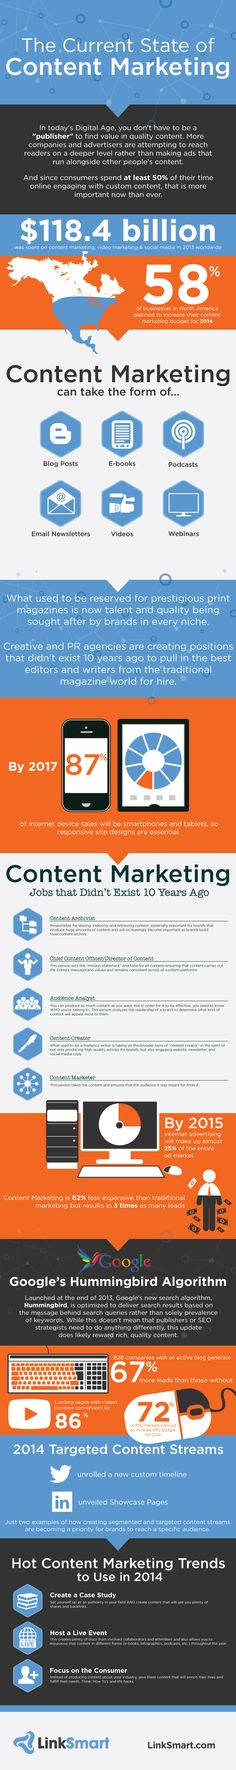 The State of #ContentMarketing in 2014 - #infographic #socialmedia